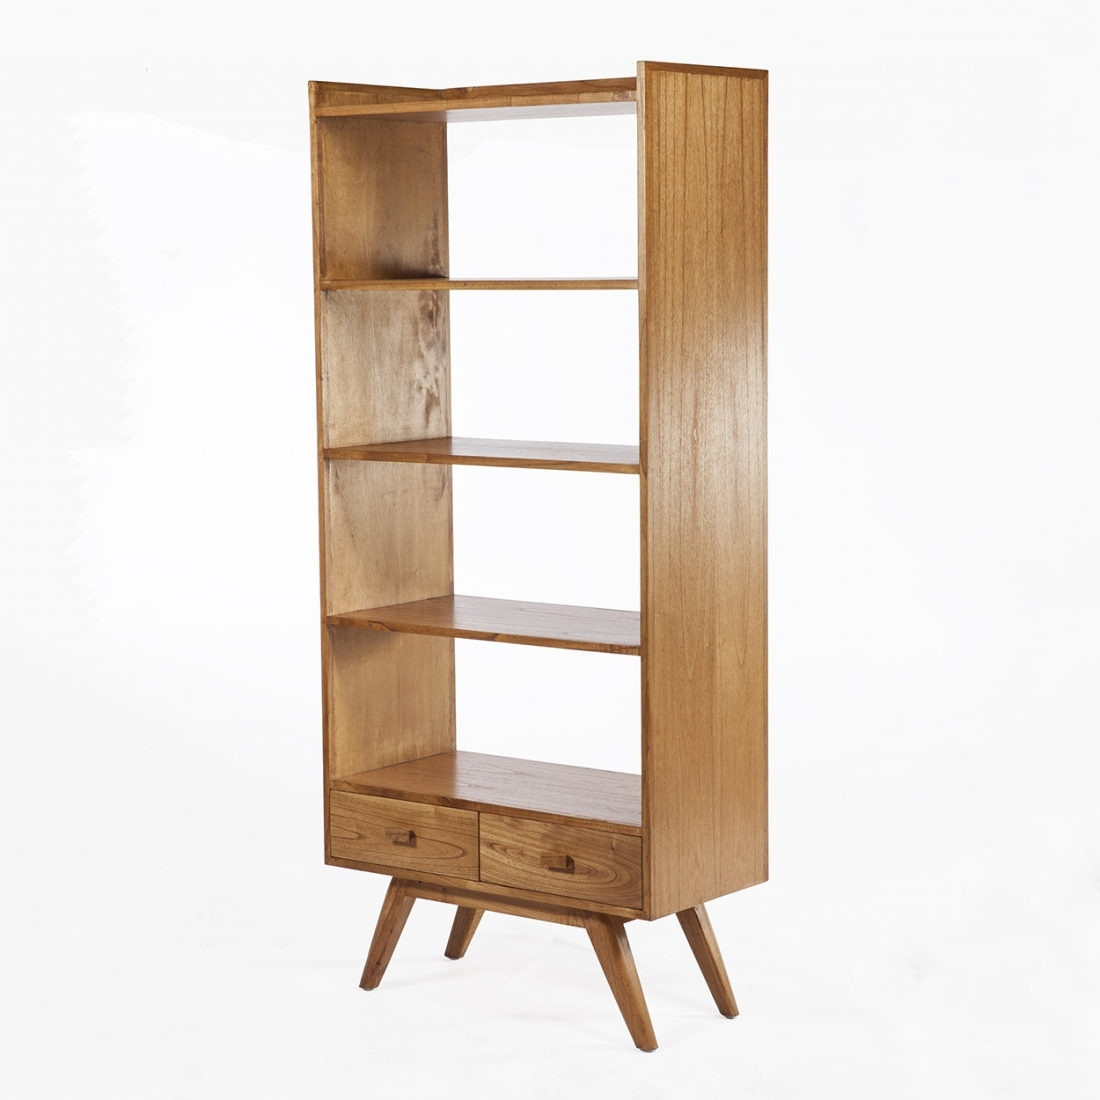 Fashionable Mid Century Modern Bookcases Throughout Furniture: Mid Century Modern Tall 4 Tier Shelving Bookcase With  (View 2 of 15)